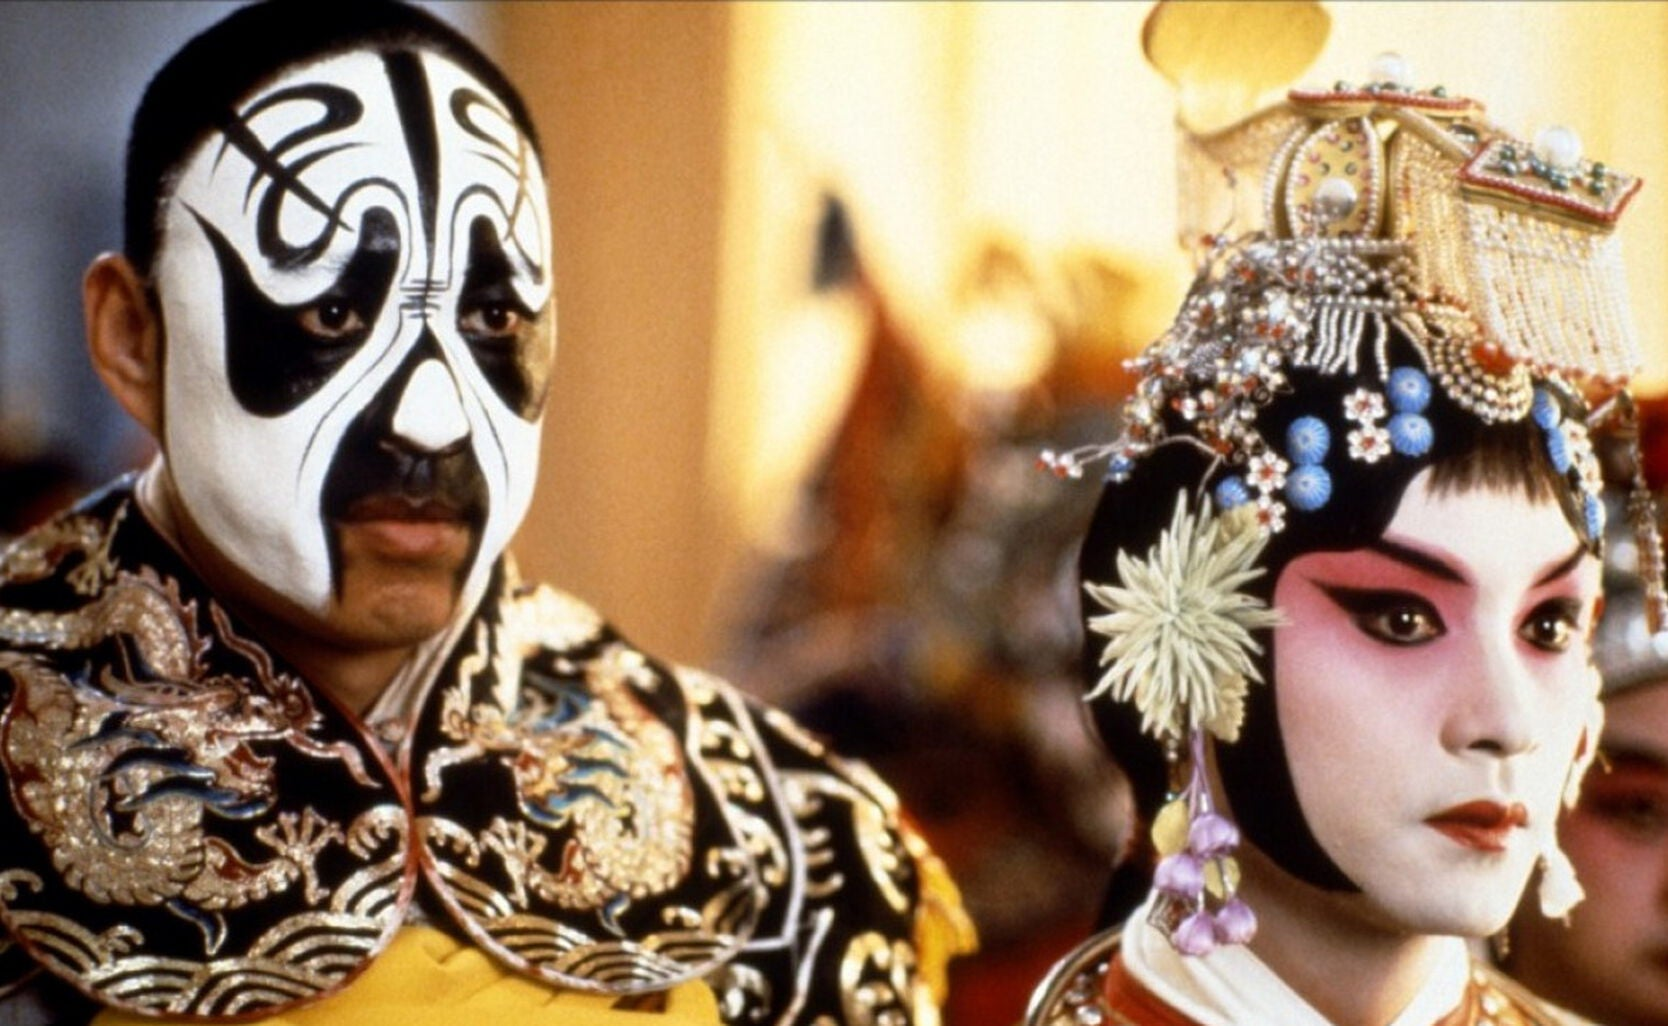 Scene from the film Farewell My Concubine